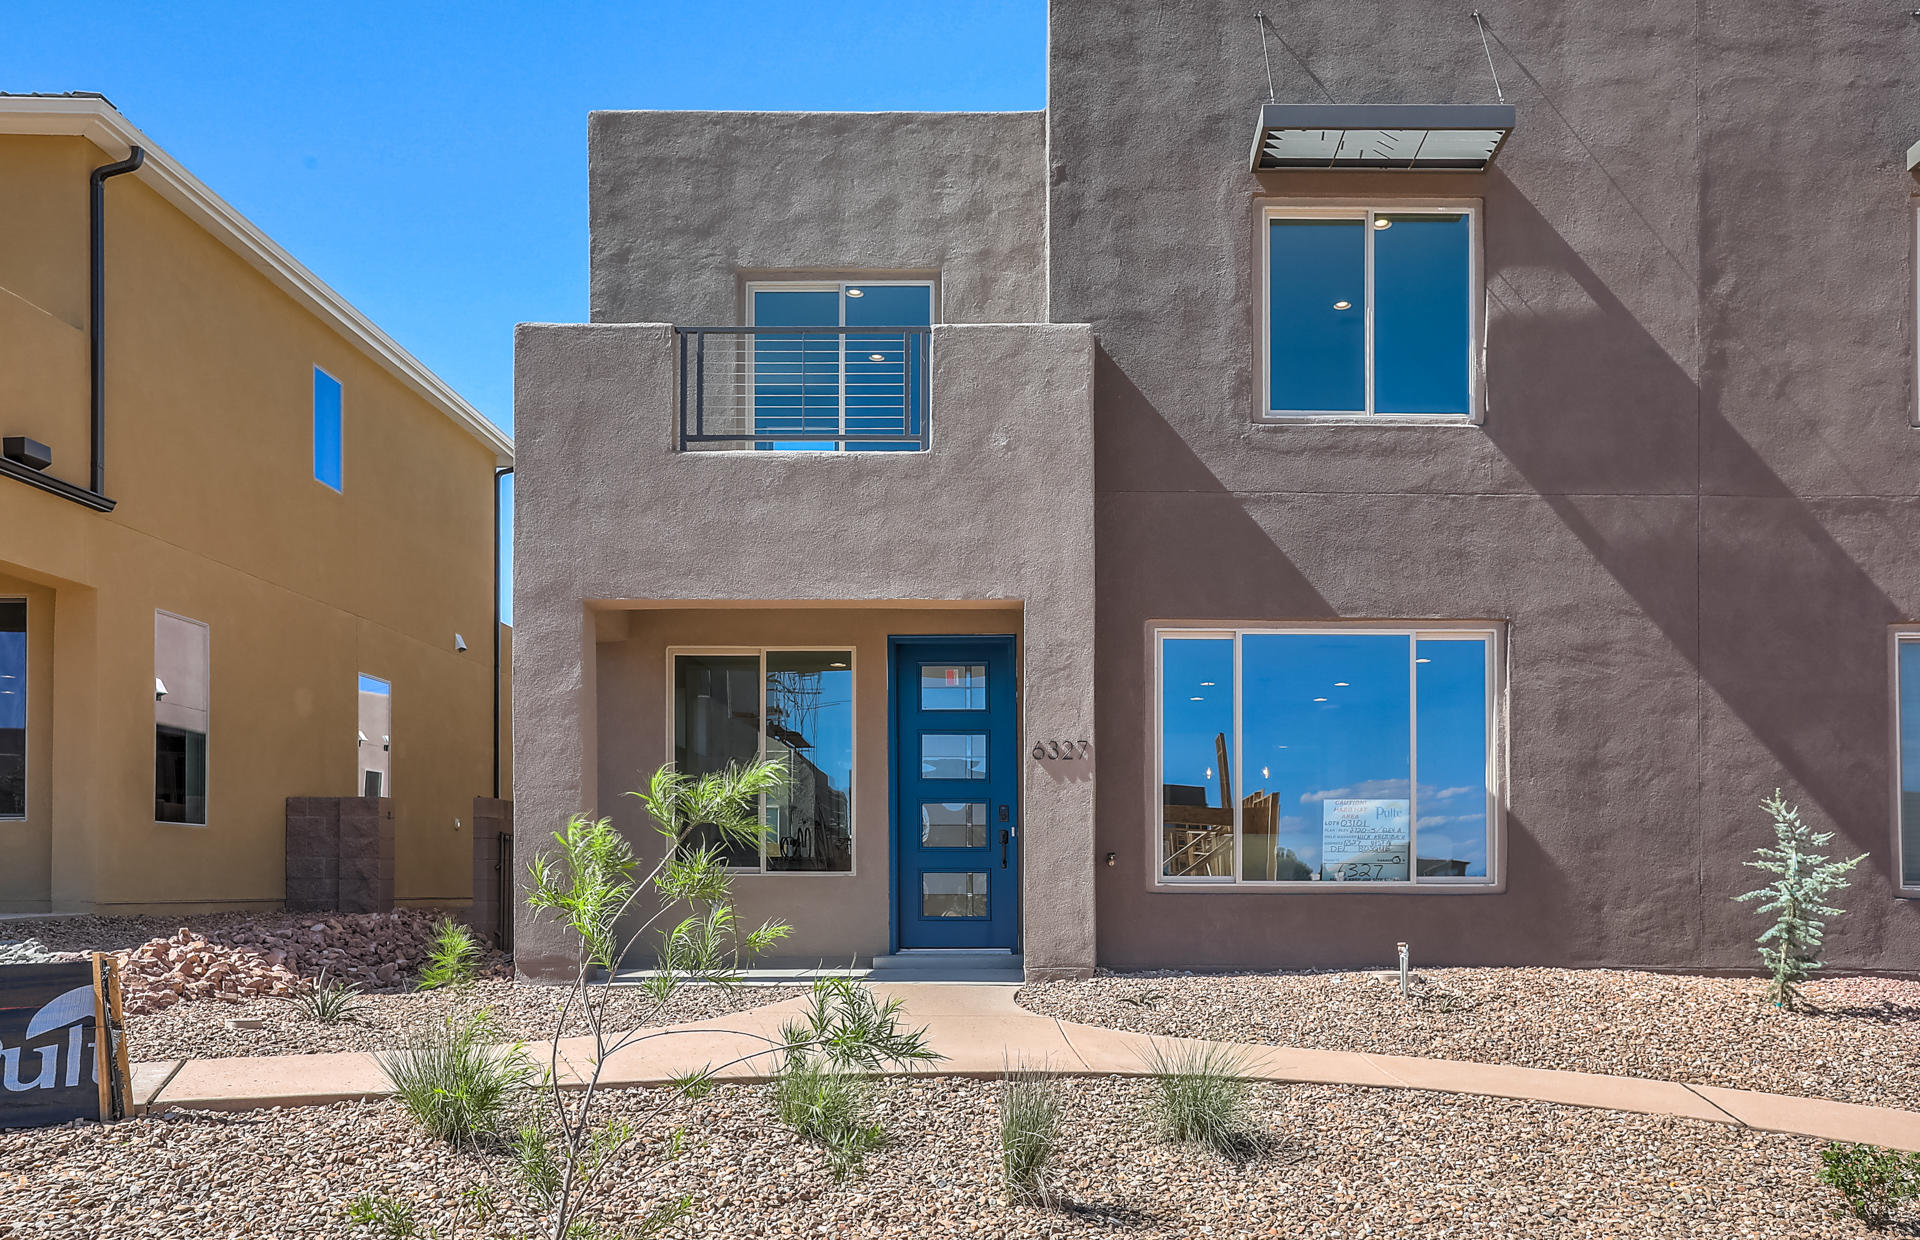 6327 NW Vista del Bosque Drive, one of homes for sale in Northwest Albuquerque and Northwest Heights